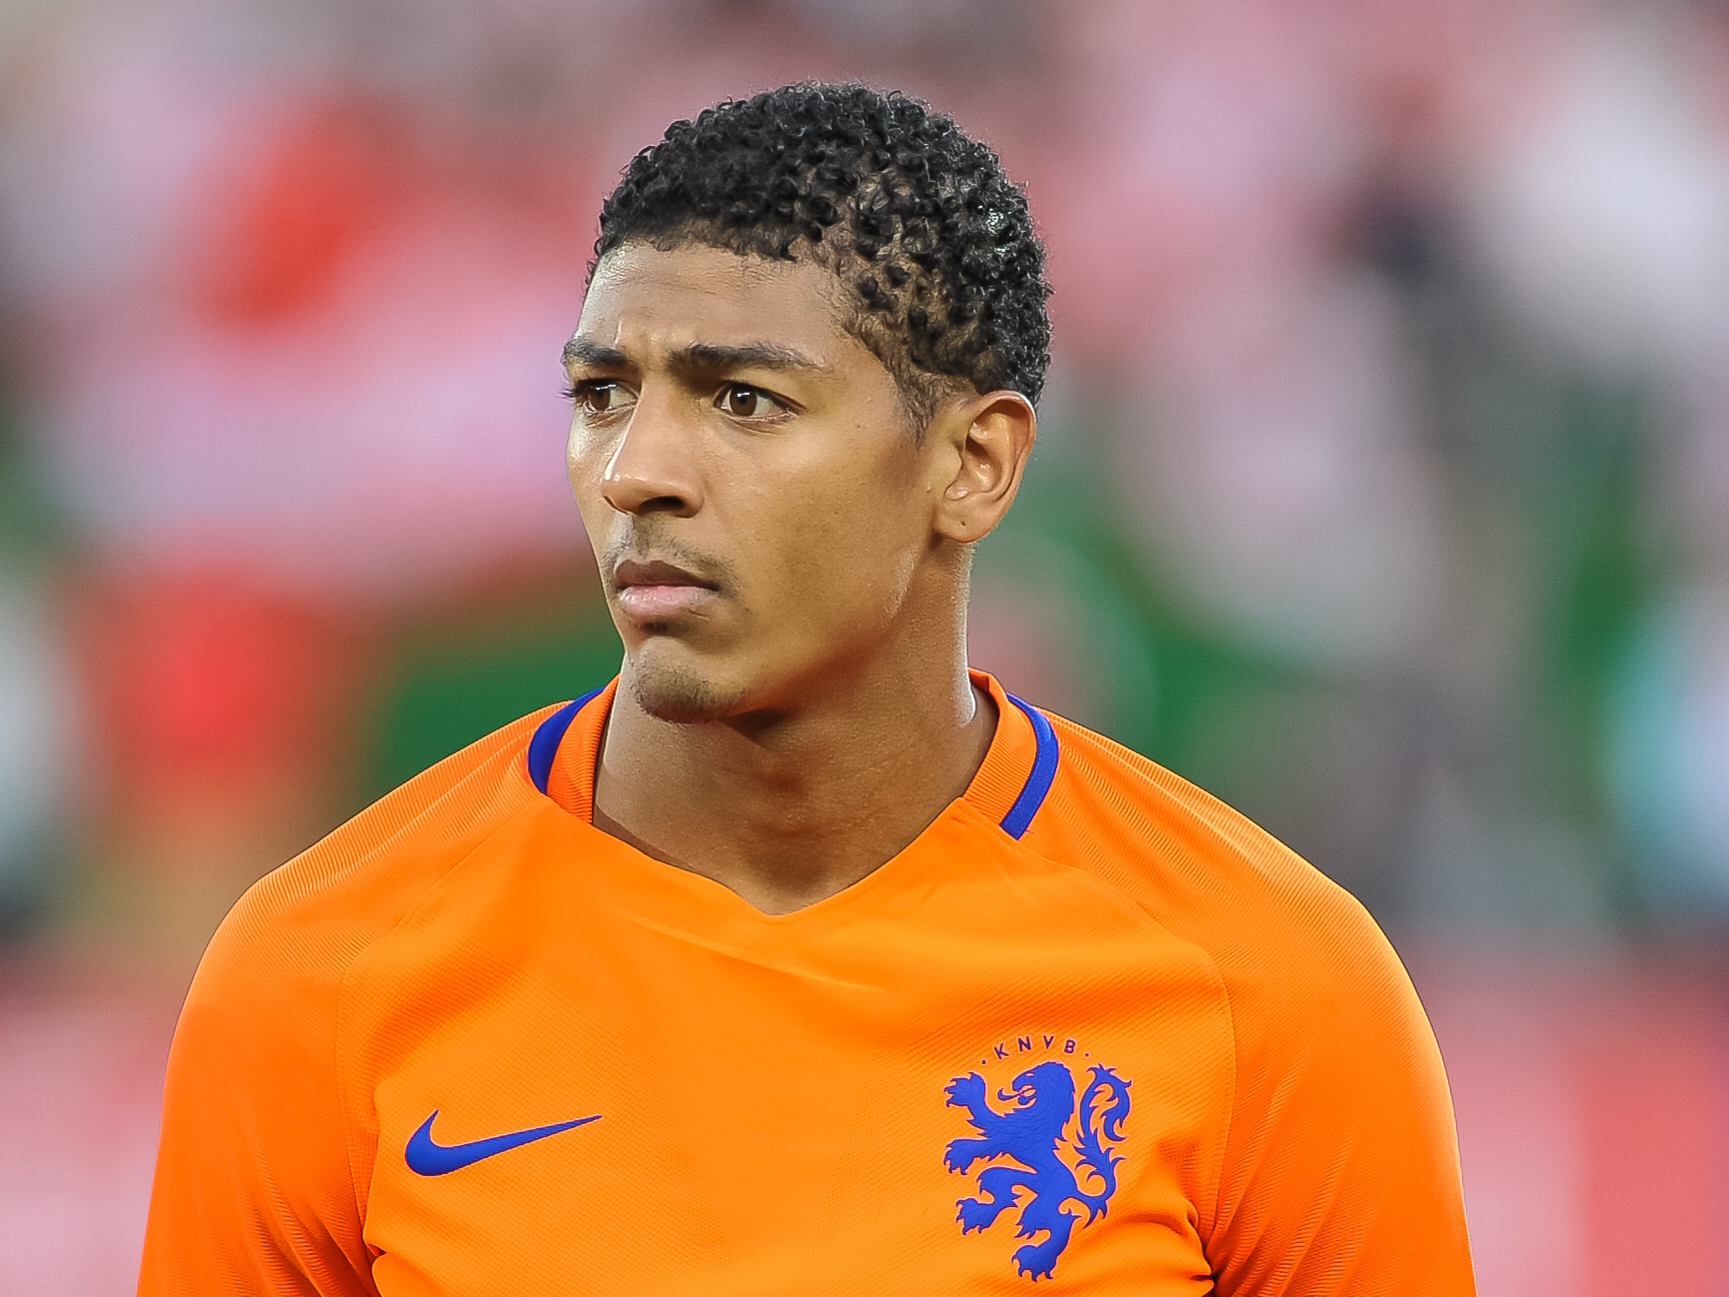 The 29-year old son of father (?) and mother(?) Patrick van Aanholt in 2020 photo. Patrick van Aanholt earned a million dollar salary - leaving the net worth at 0.7 million in 2020